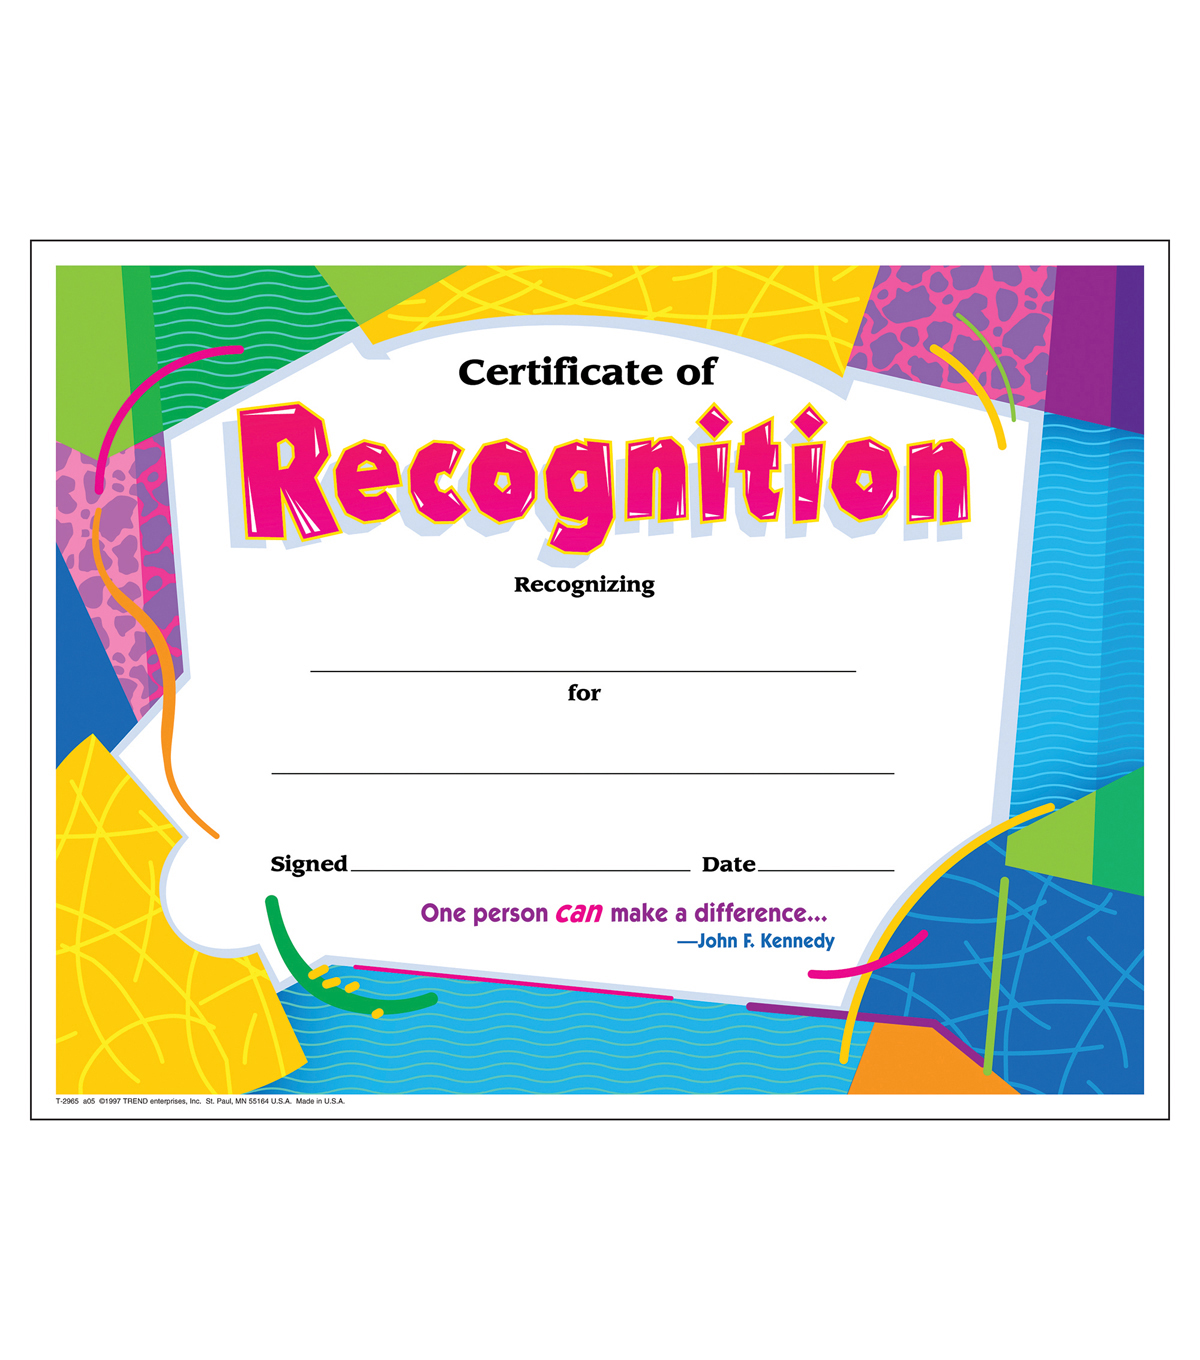 Certificate of Recognition Colorful Classics Certificates, 30 Per Pack